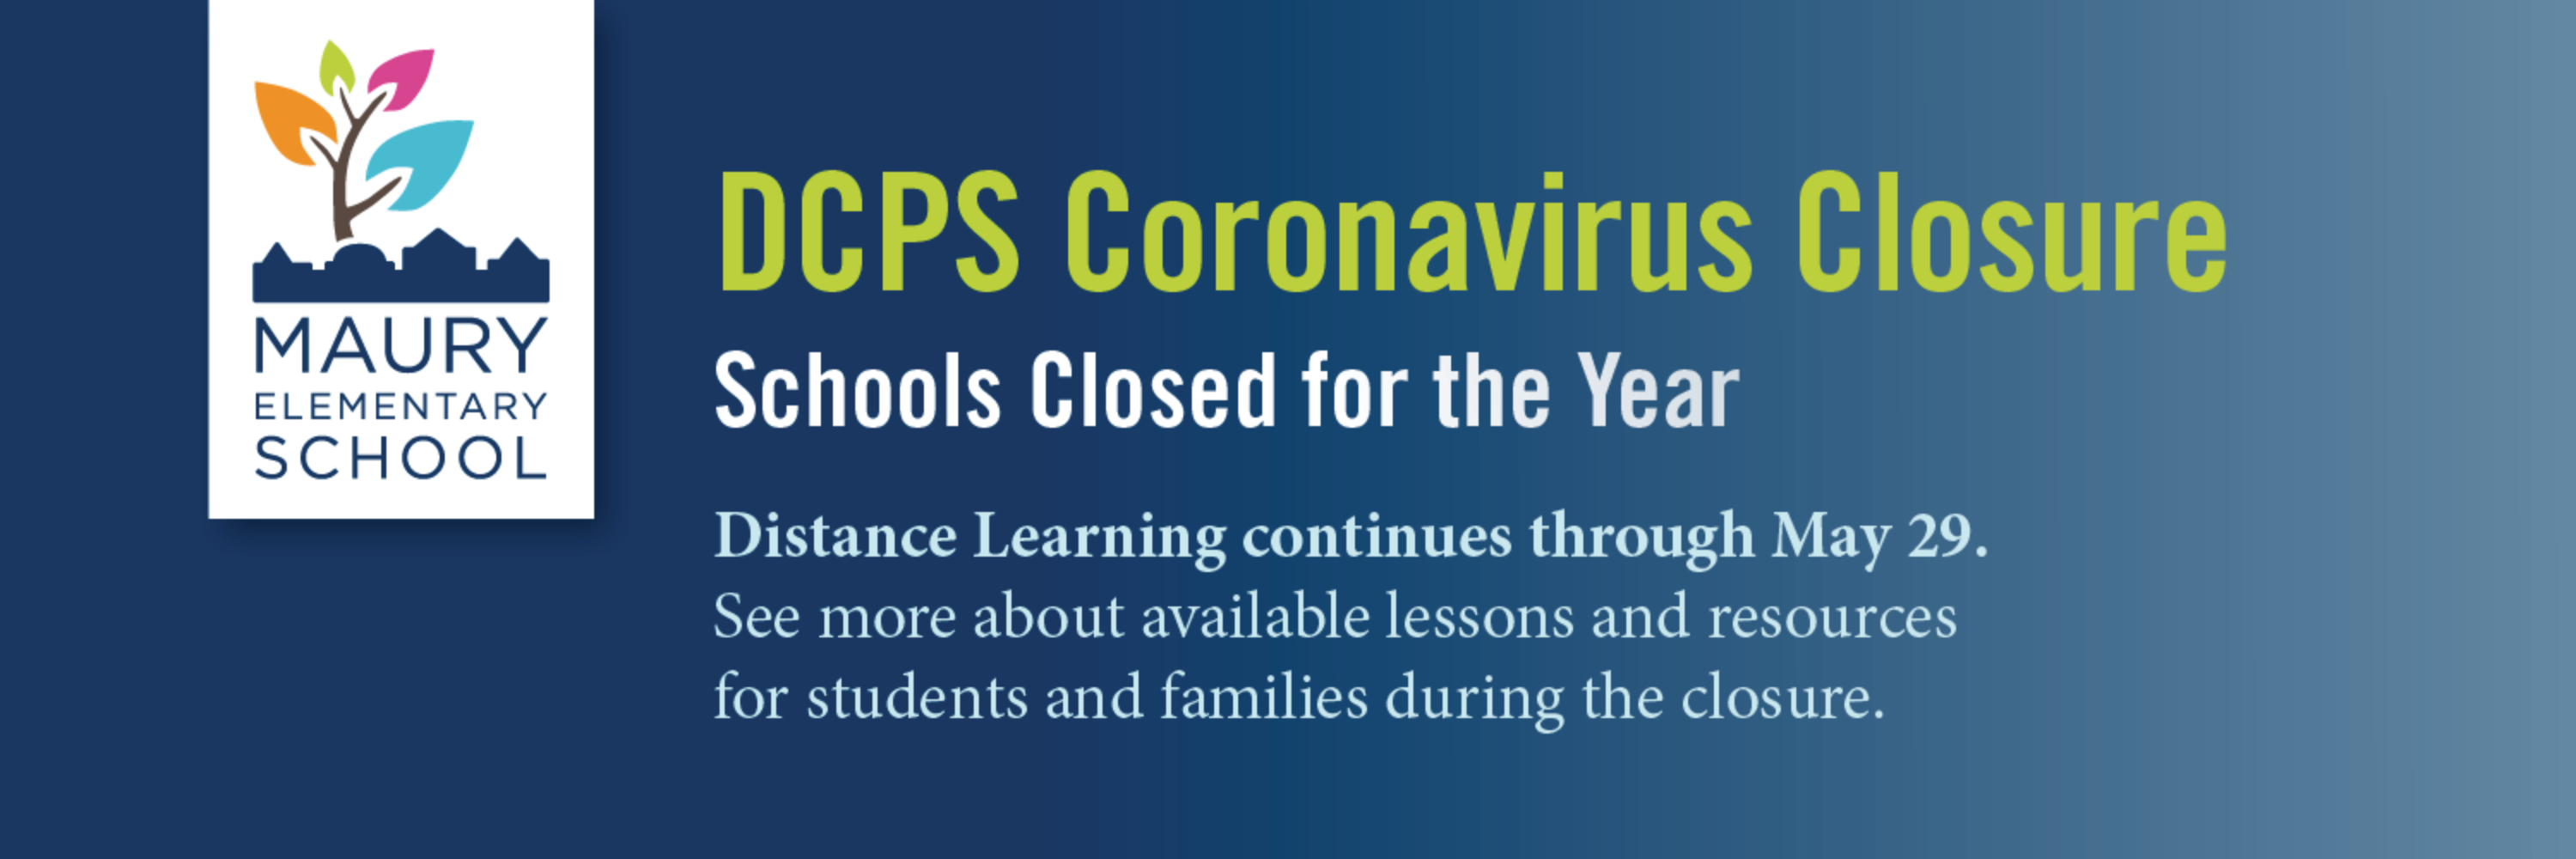 DCPS Coronavirus Closure